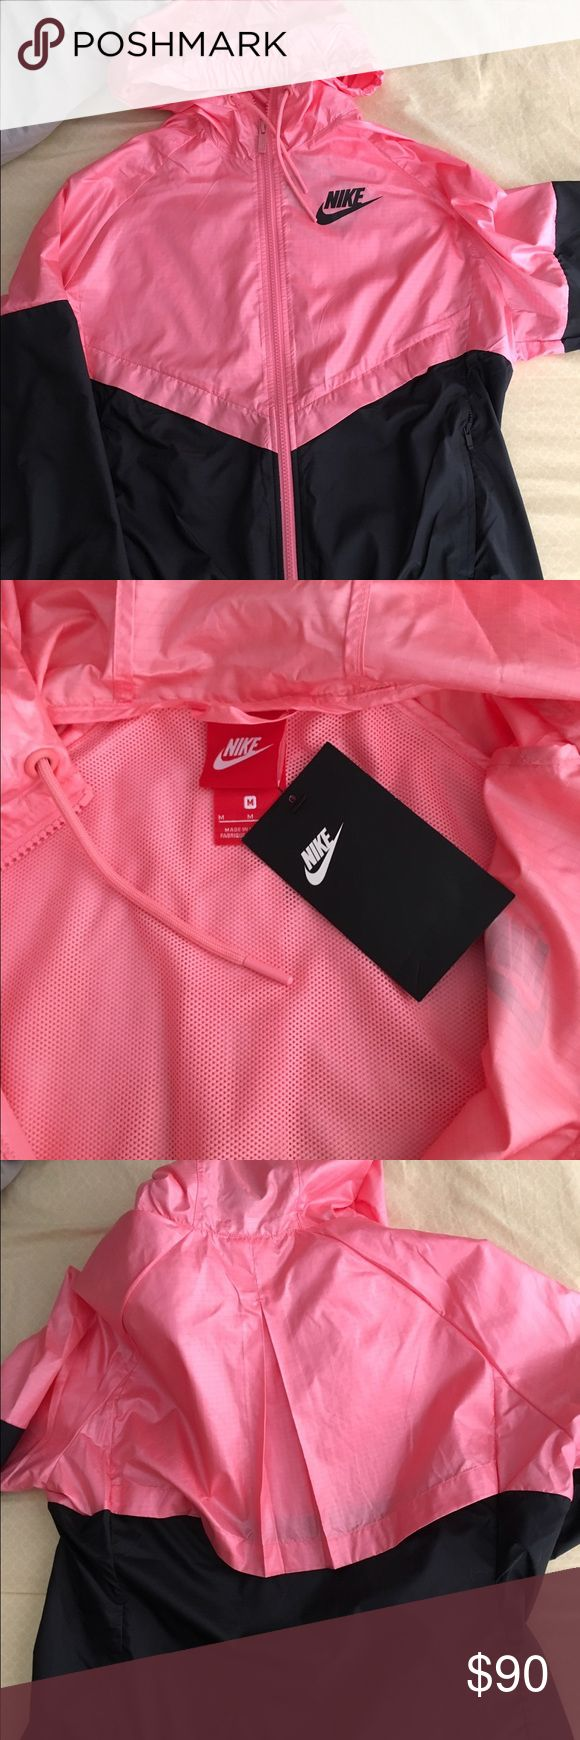 pink nike windbreaker BRAND NEW!! Tags still on! light material. If u have any questions please ask!! Make me an offer!! Nike Jackets & Coats